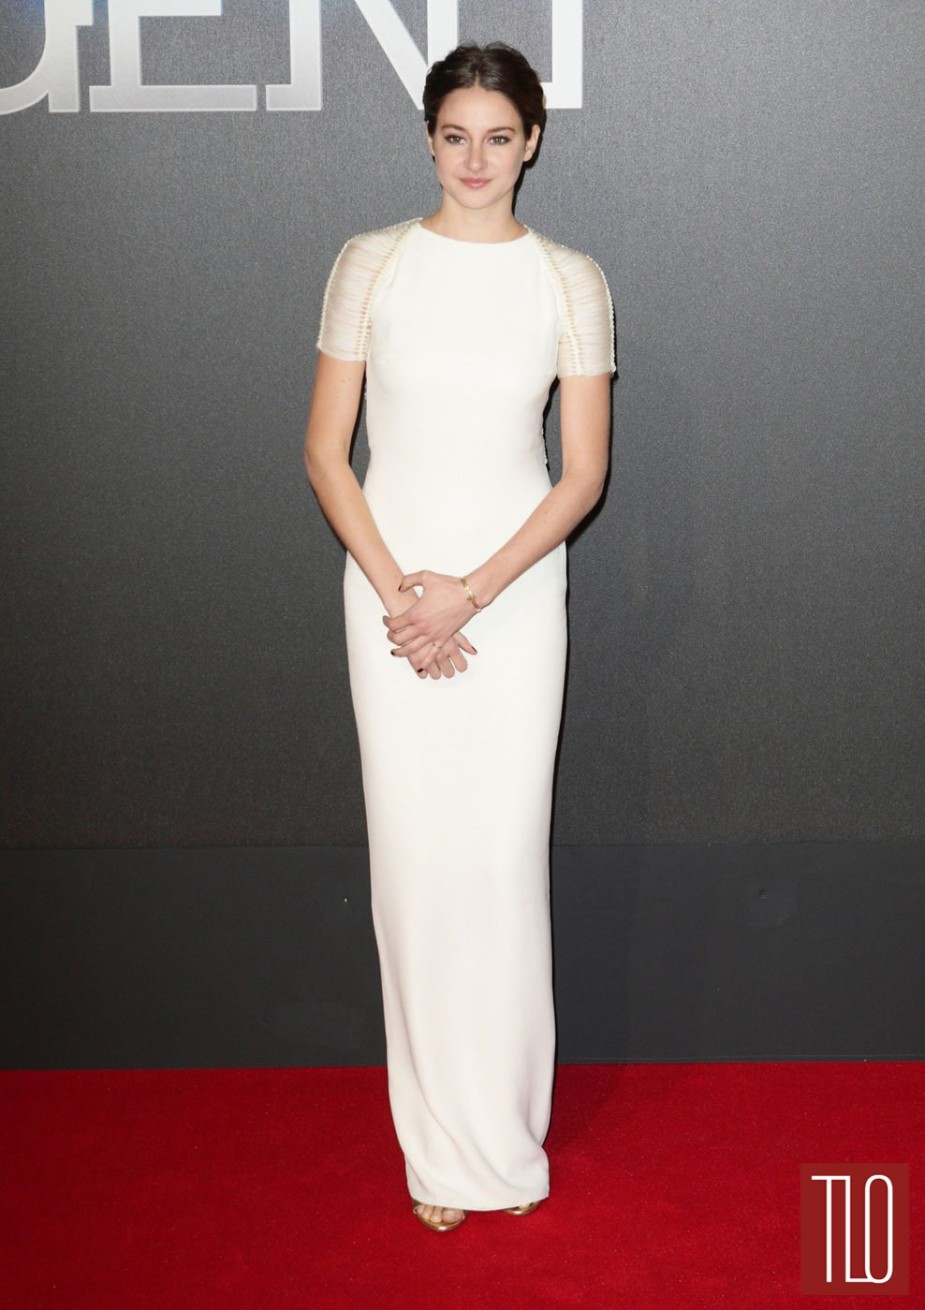 Shailene-Woodley-Insurgent-London-World-Movie-Premiere-Red-Carpet-Fashion-Ralph-Lauren-Tom-Lorenzo-Site-TLO-1